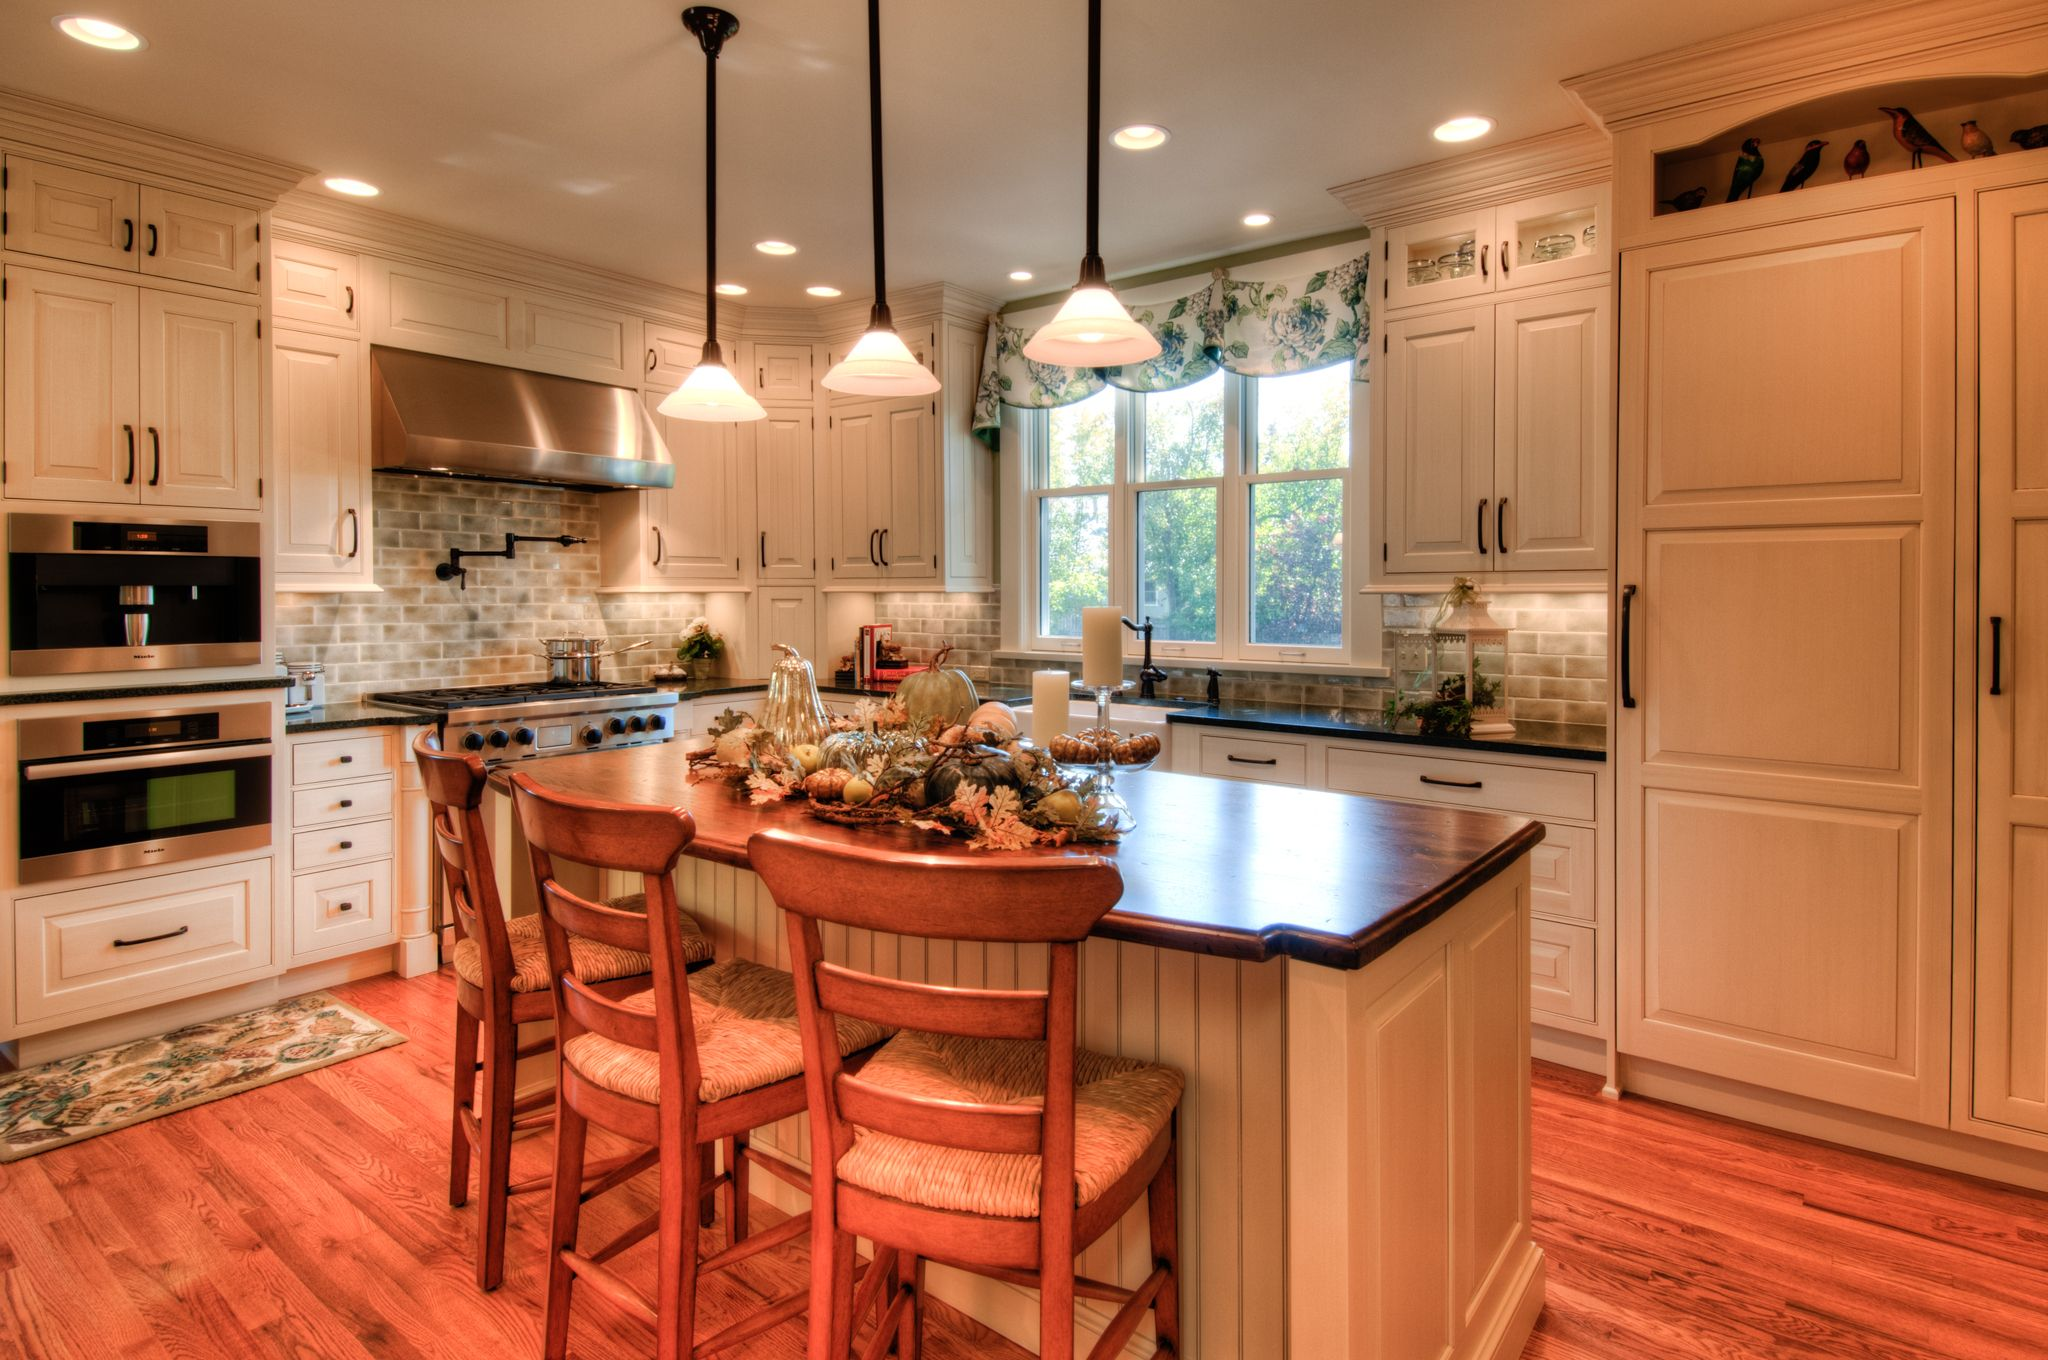 Cottage style on a kitchen remodel for a historic 1800s